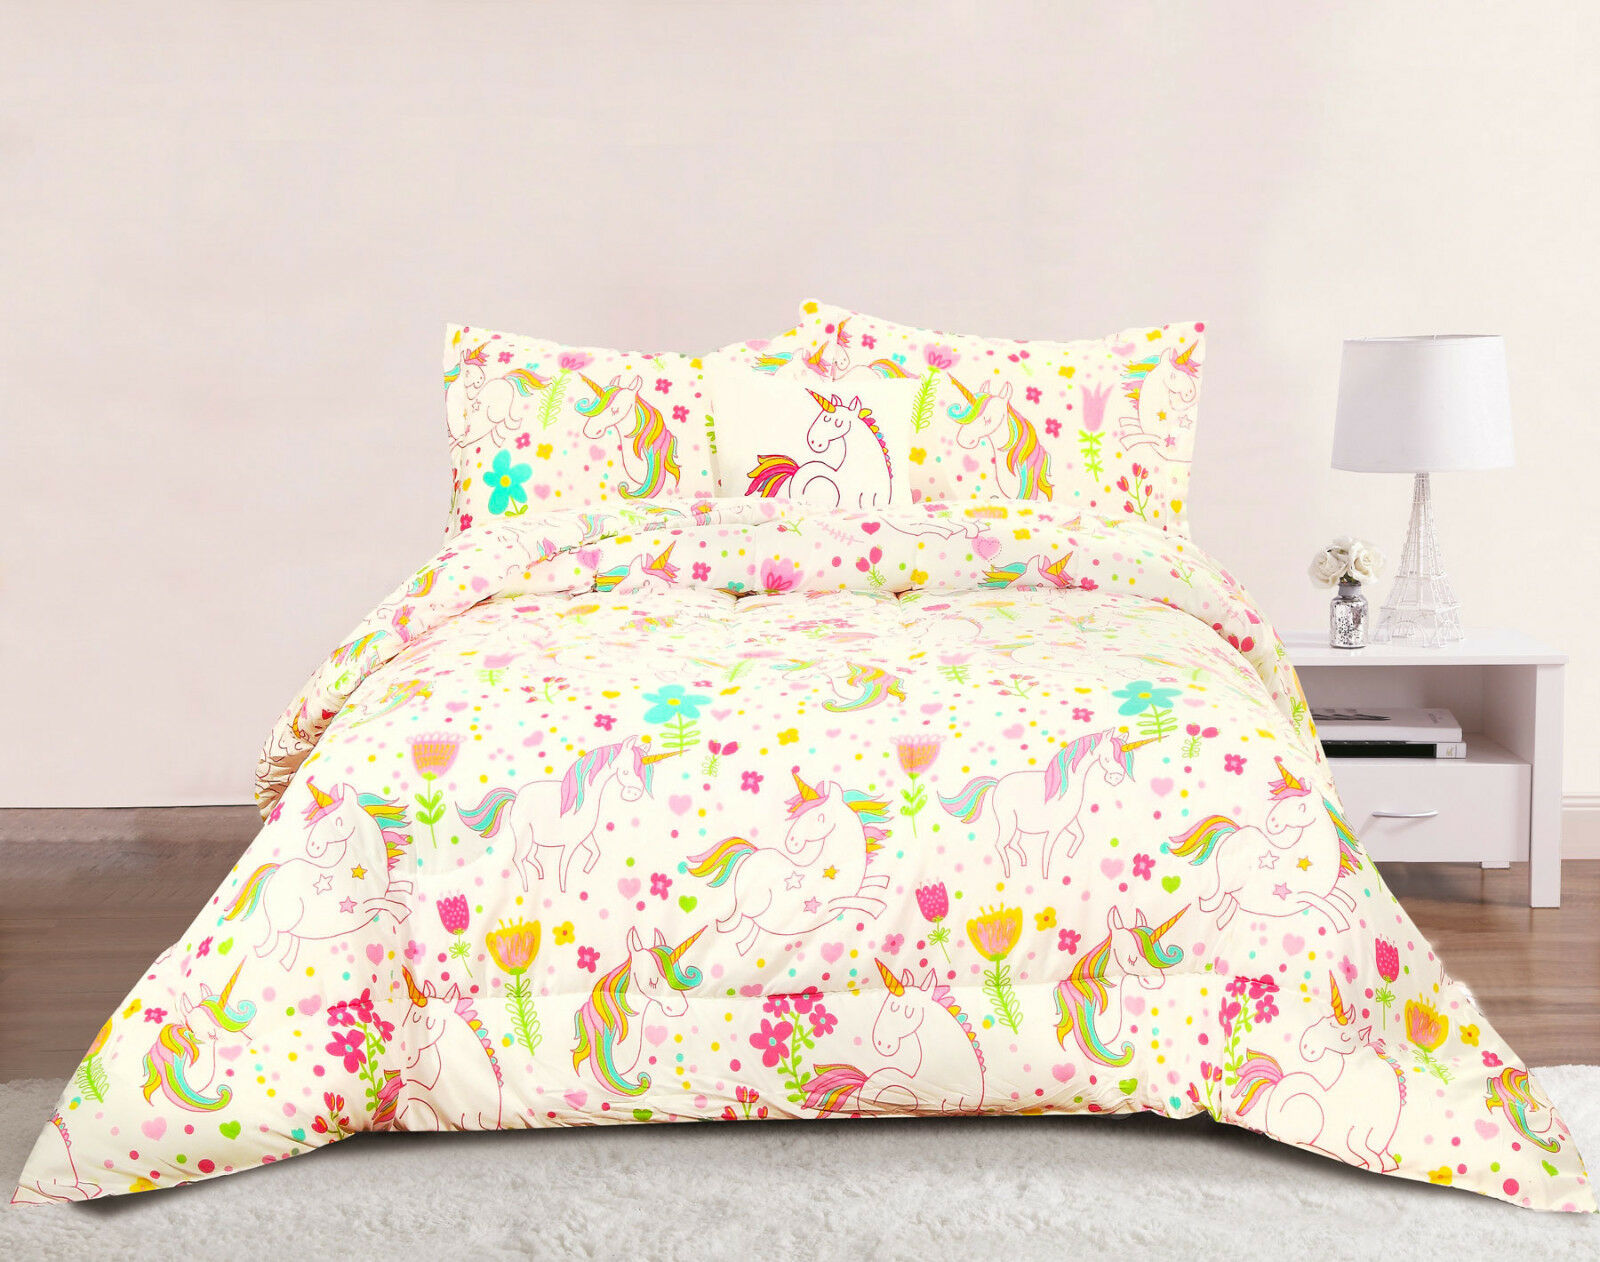 Unicorn Girls Bedding Twin 3 Piece Comforter Bed Set Pastel Heart Floral Polka For Sale Online Ebay